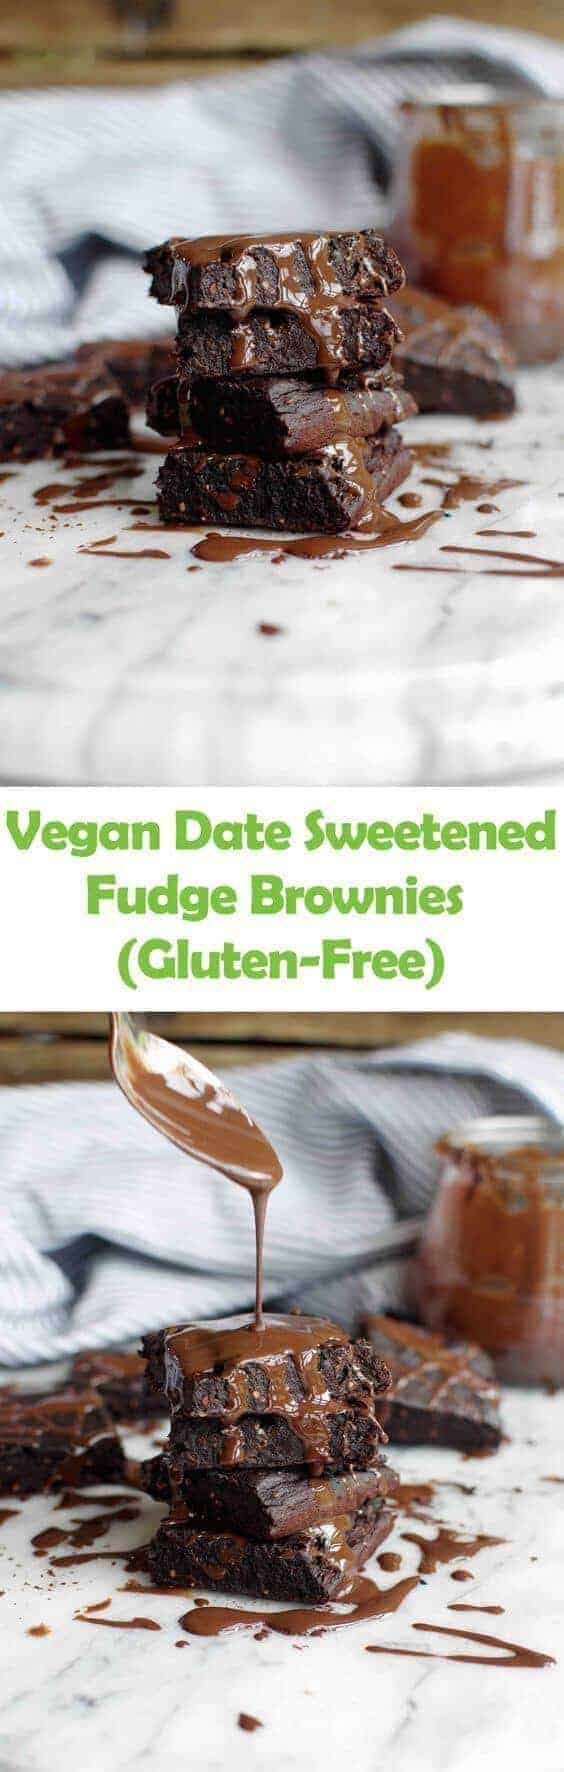 Vegan Date Sweetened Fudge Brownies